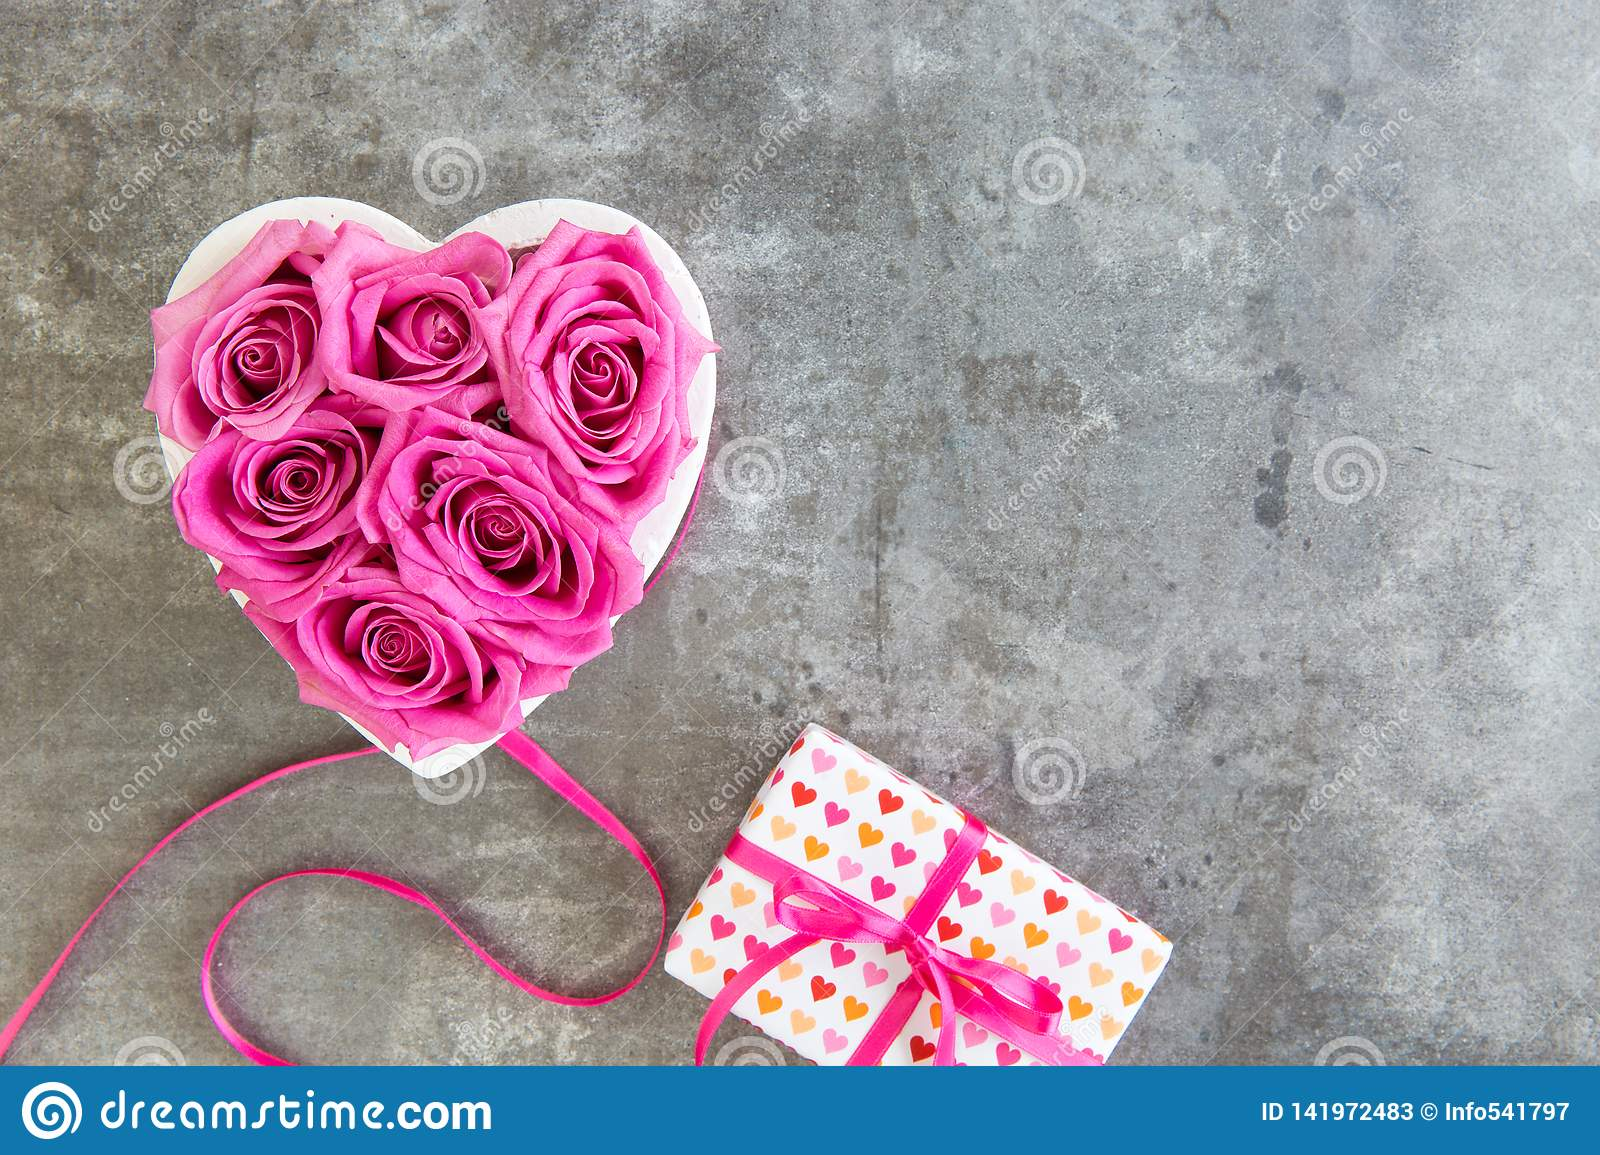 Heart of roses in pink and gift box with bow, Mother`s Day